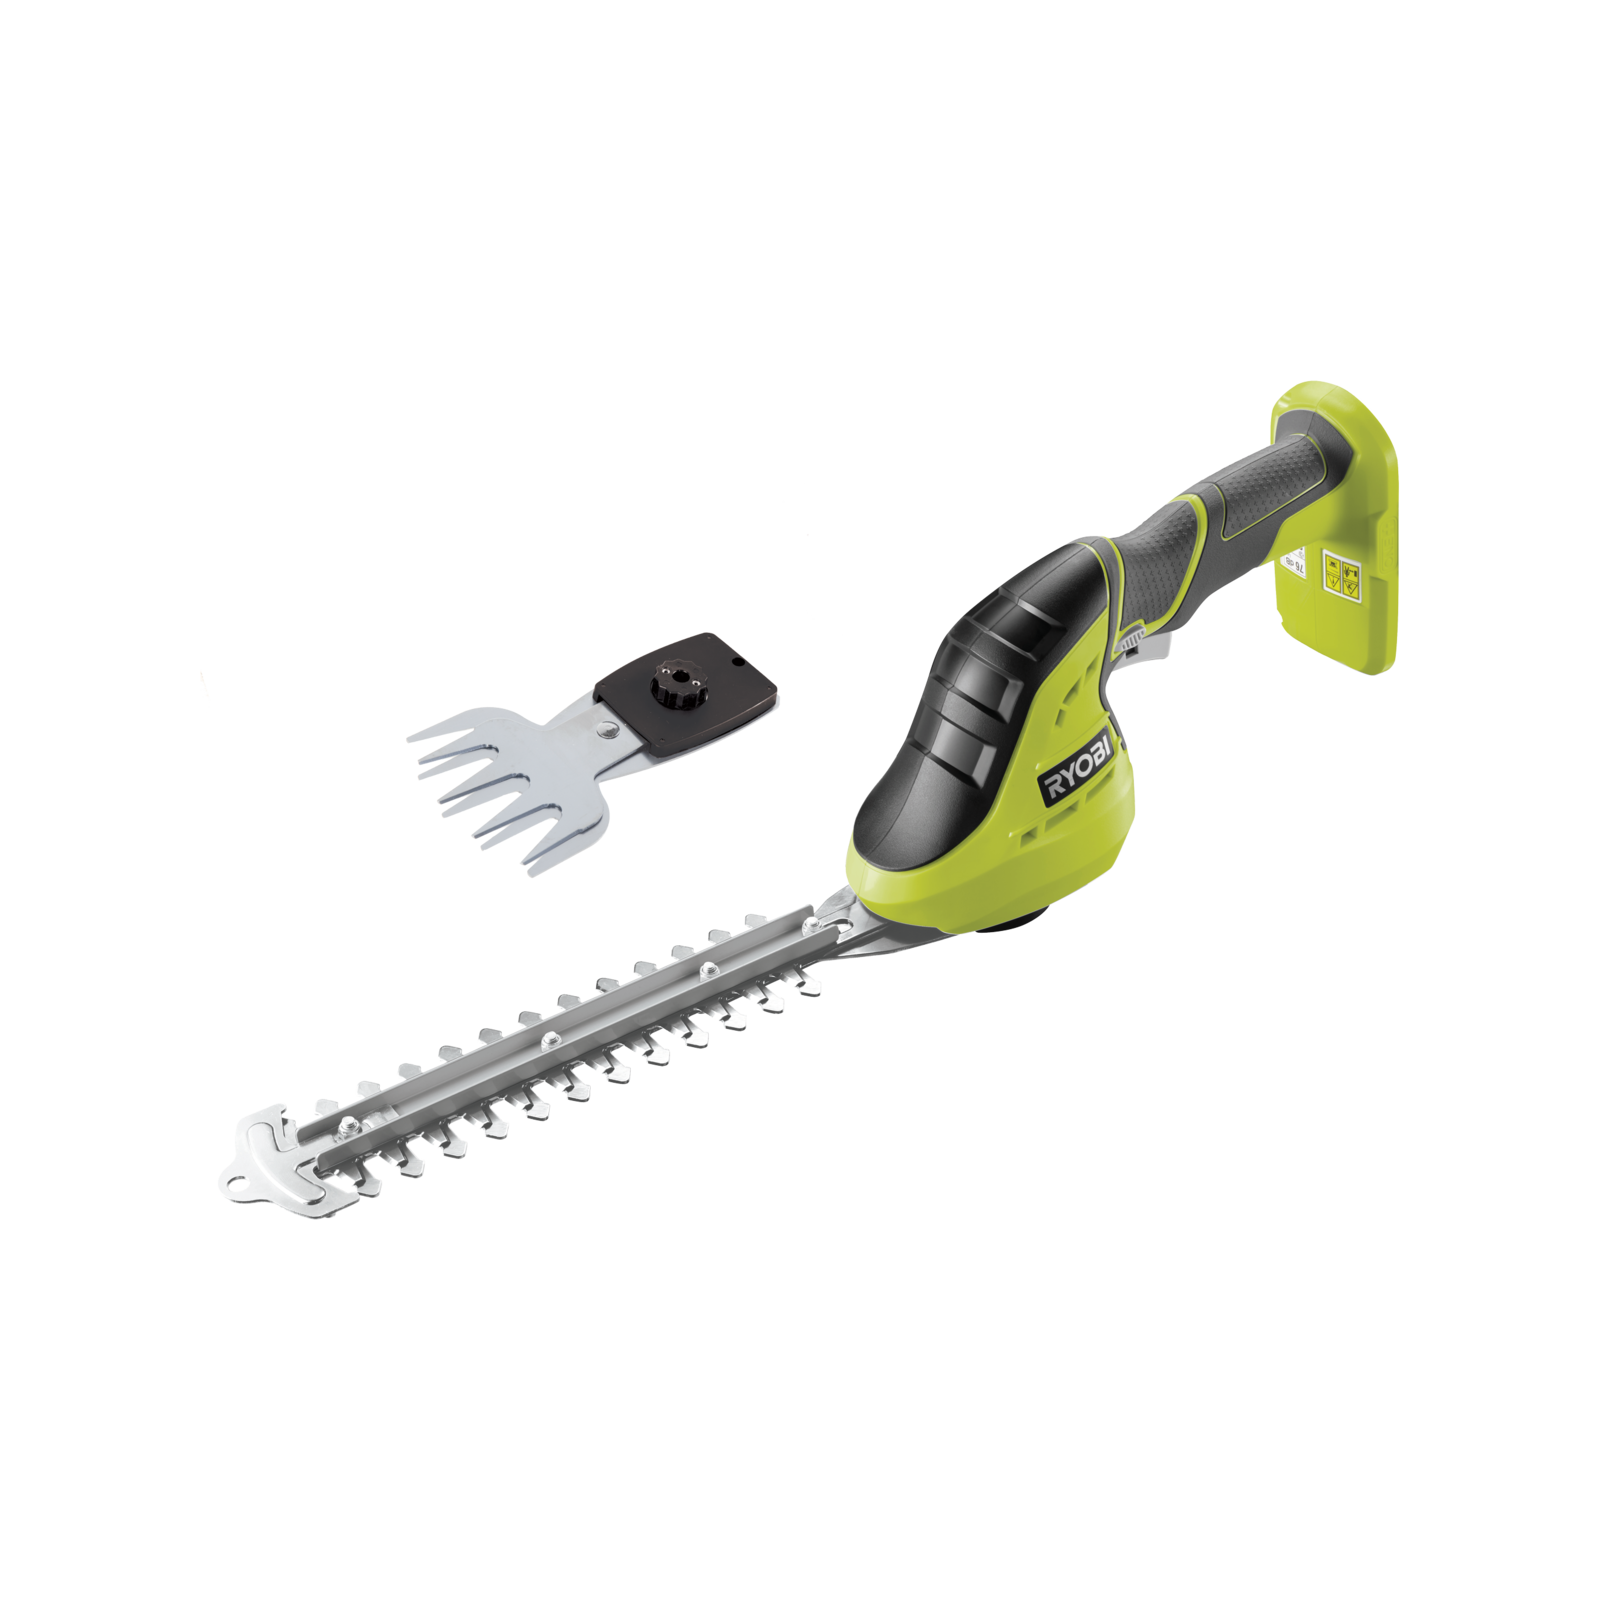 Ryobi One+ 18V Compact Hedger And Shearer - Skin Only